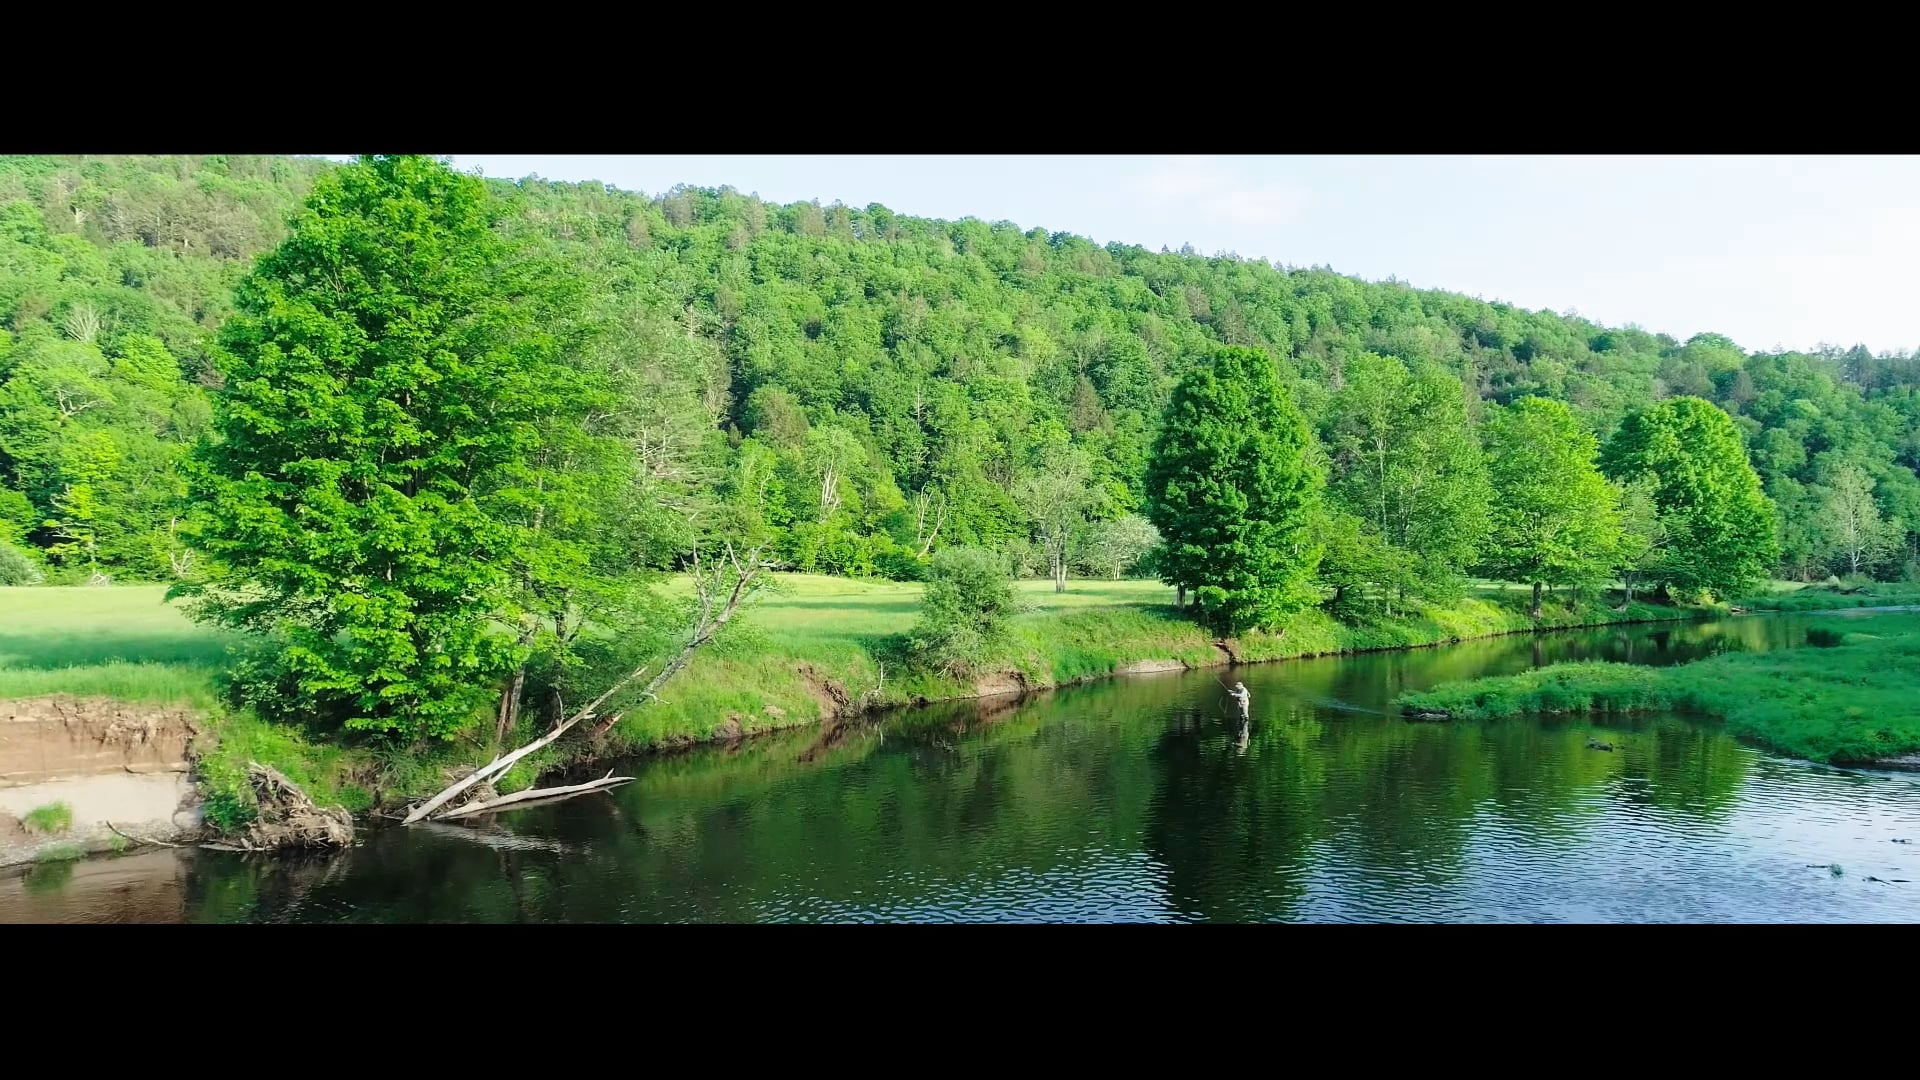 Land of Little Rivers TRAILER 1  4.06.19